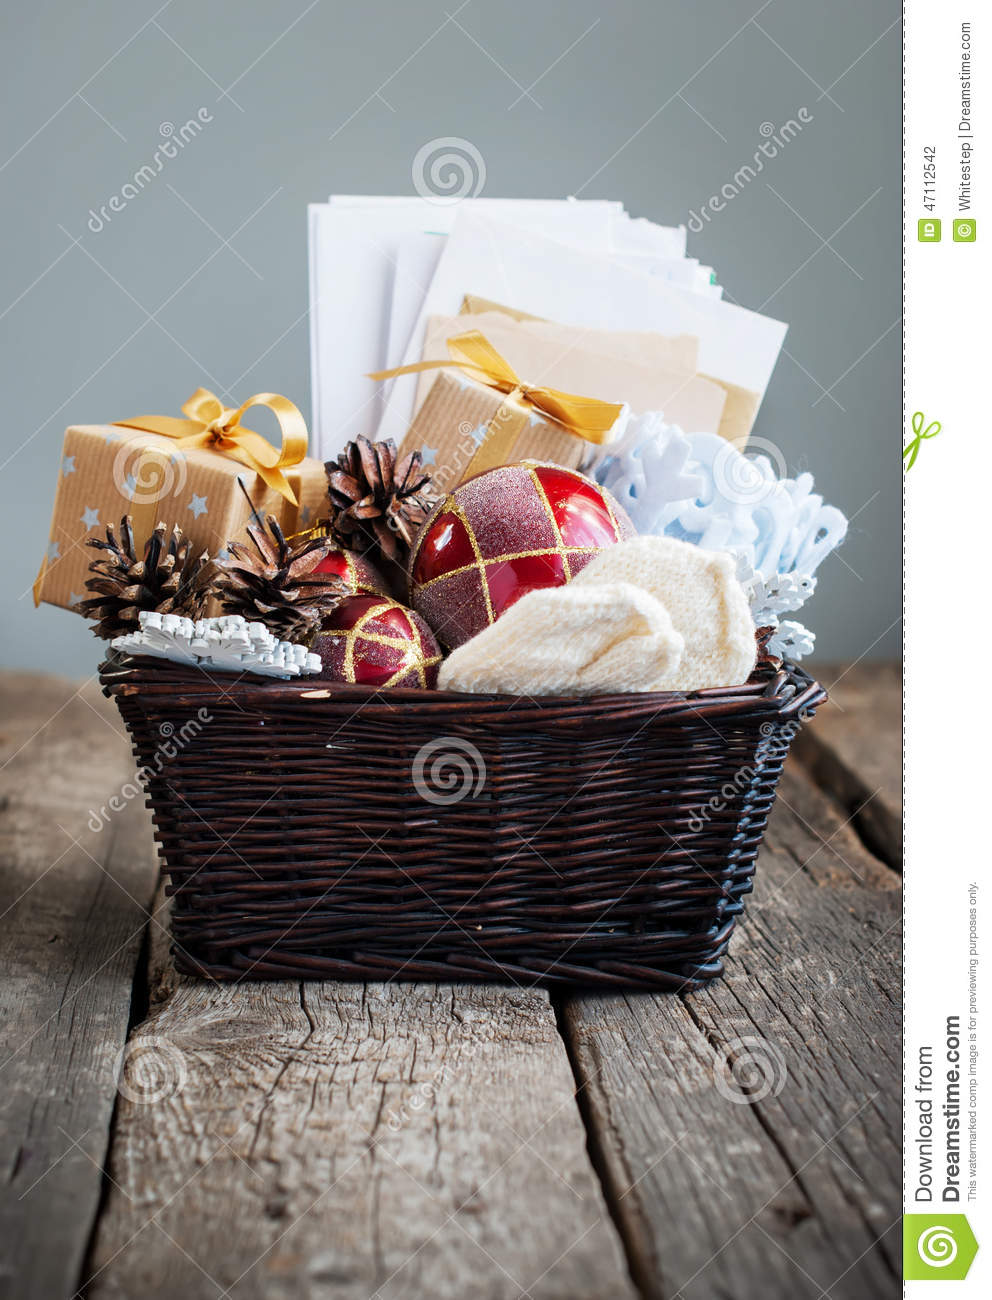 Christmas vintage gifts in a basket country style stock Country christmas gifts to make